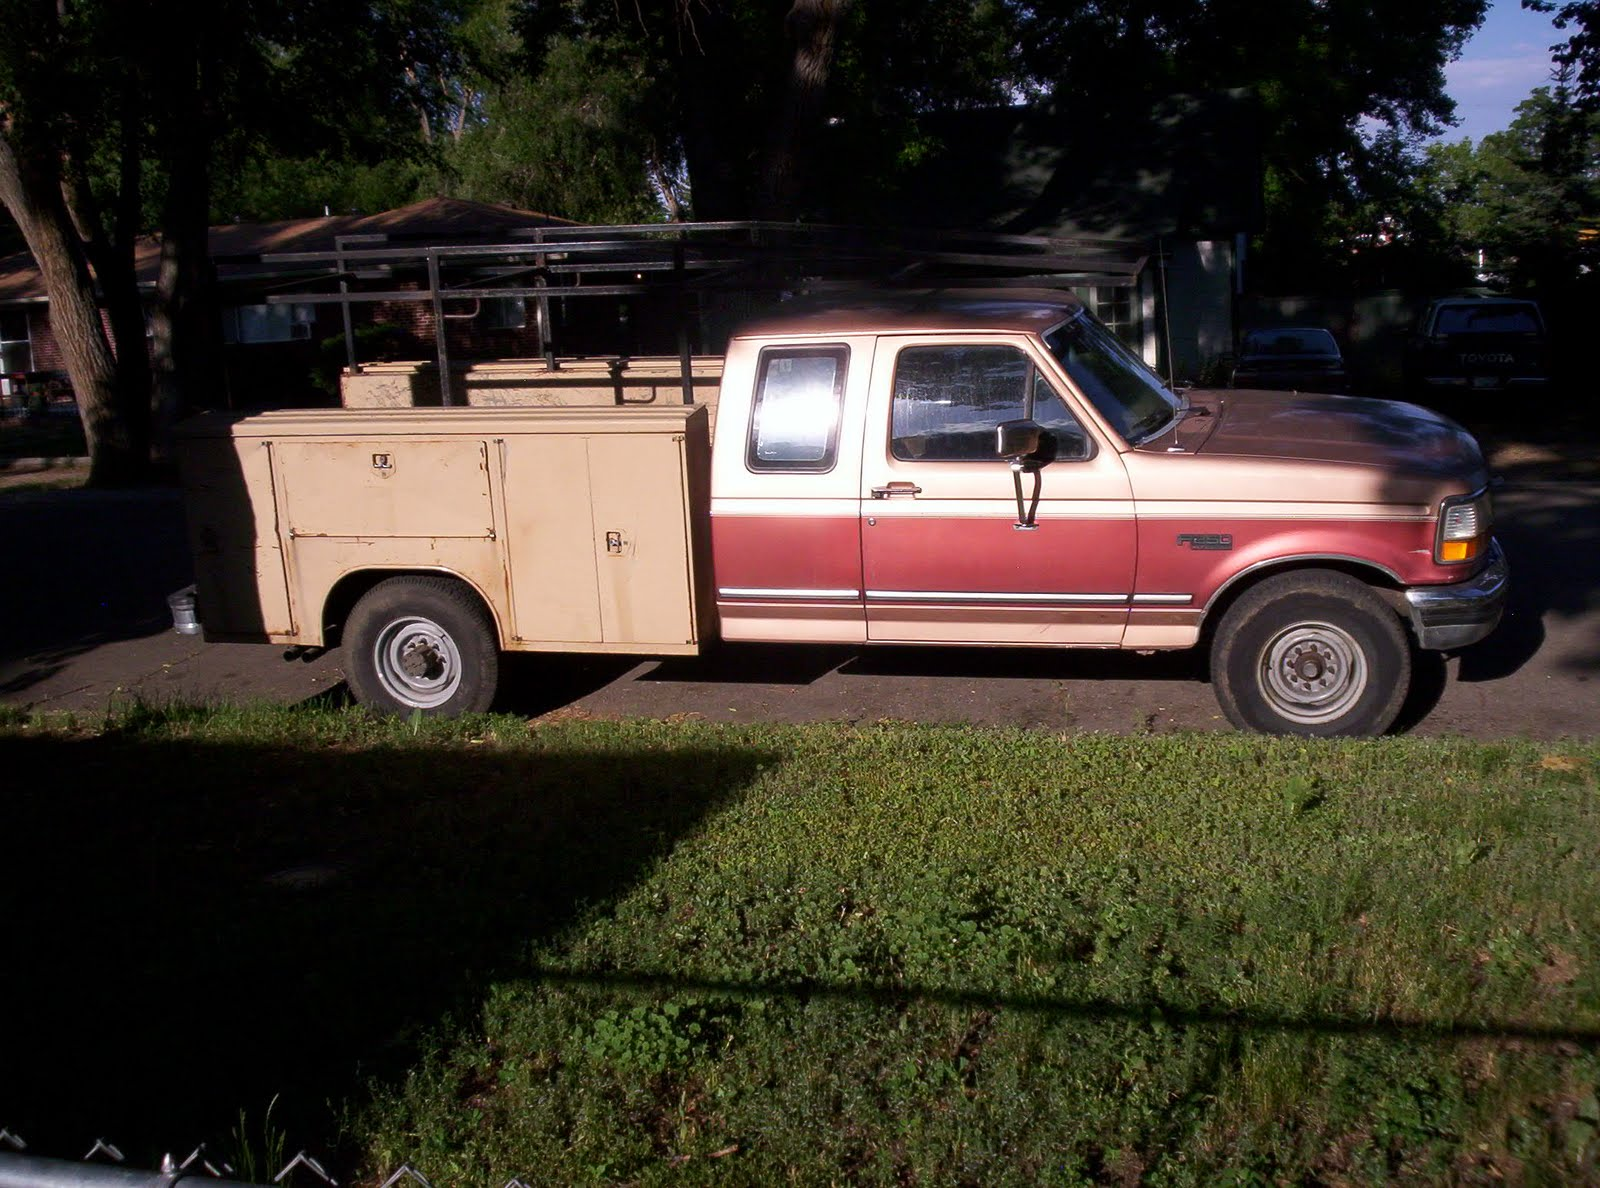 brucker brothers 1994 ford f250 v 8 auto 2wd 8 39 utility bed with rack. Black Bedroom Furniture Sets. Home Design Ideas